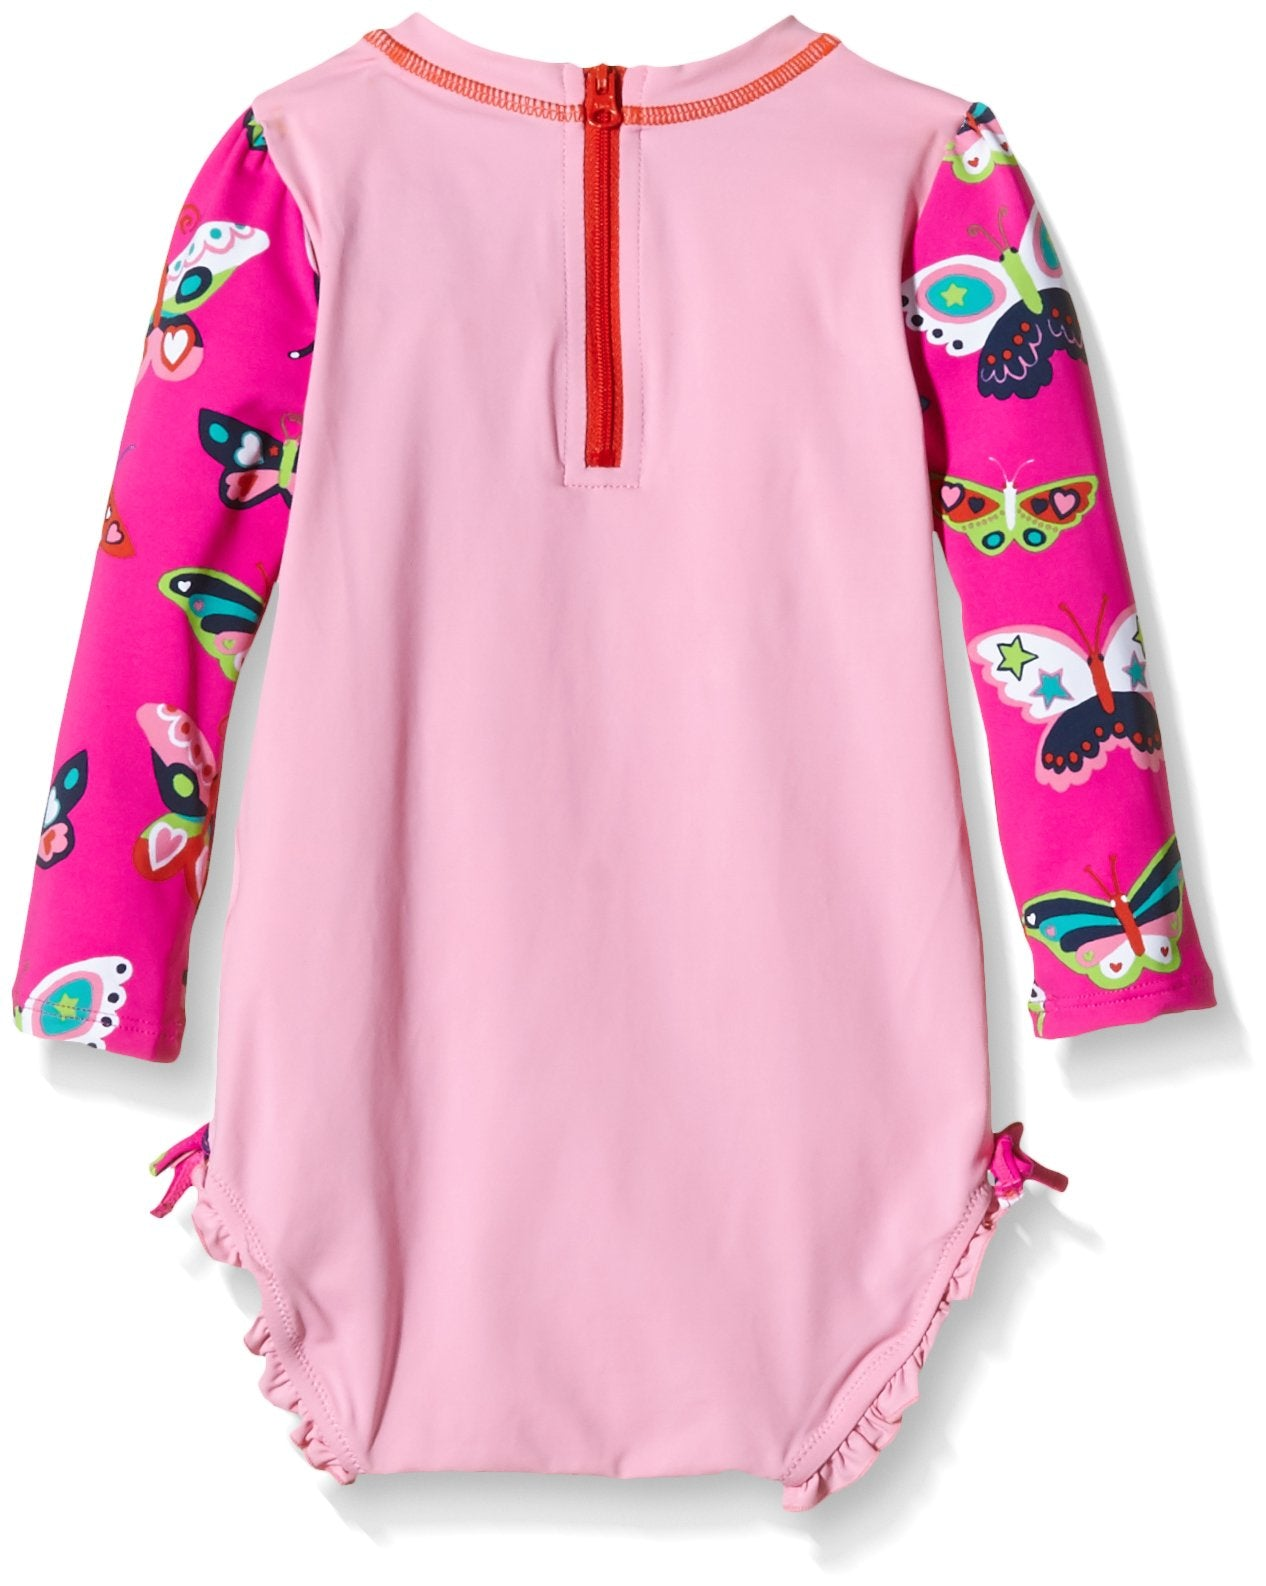 Hatley Baby Electric Butterflies Rash Guard, Pink, 3-6 Months